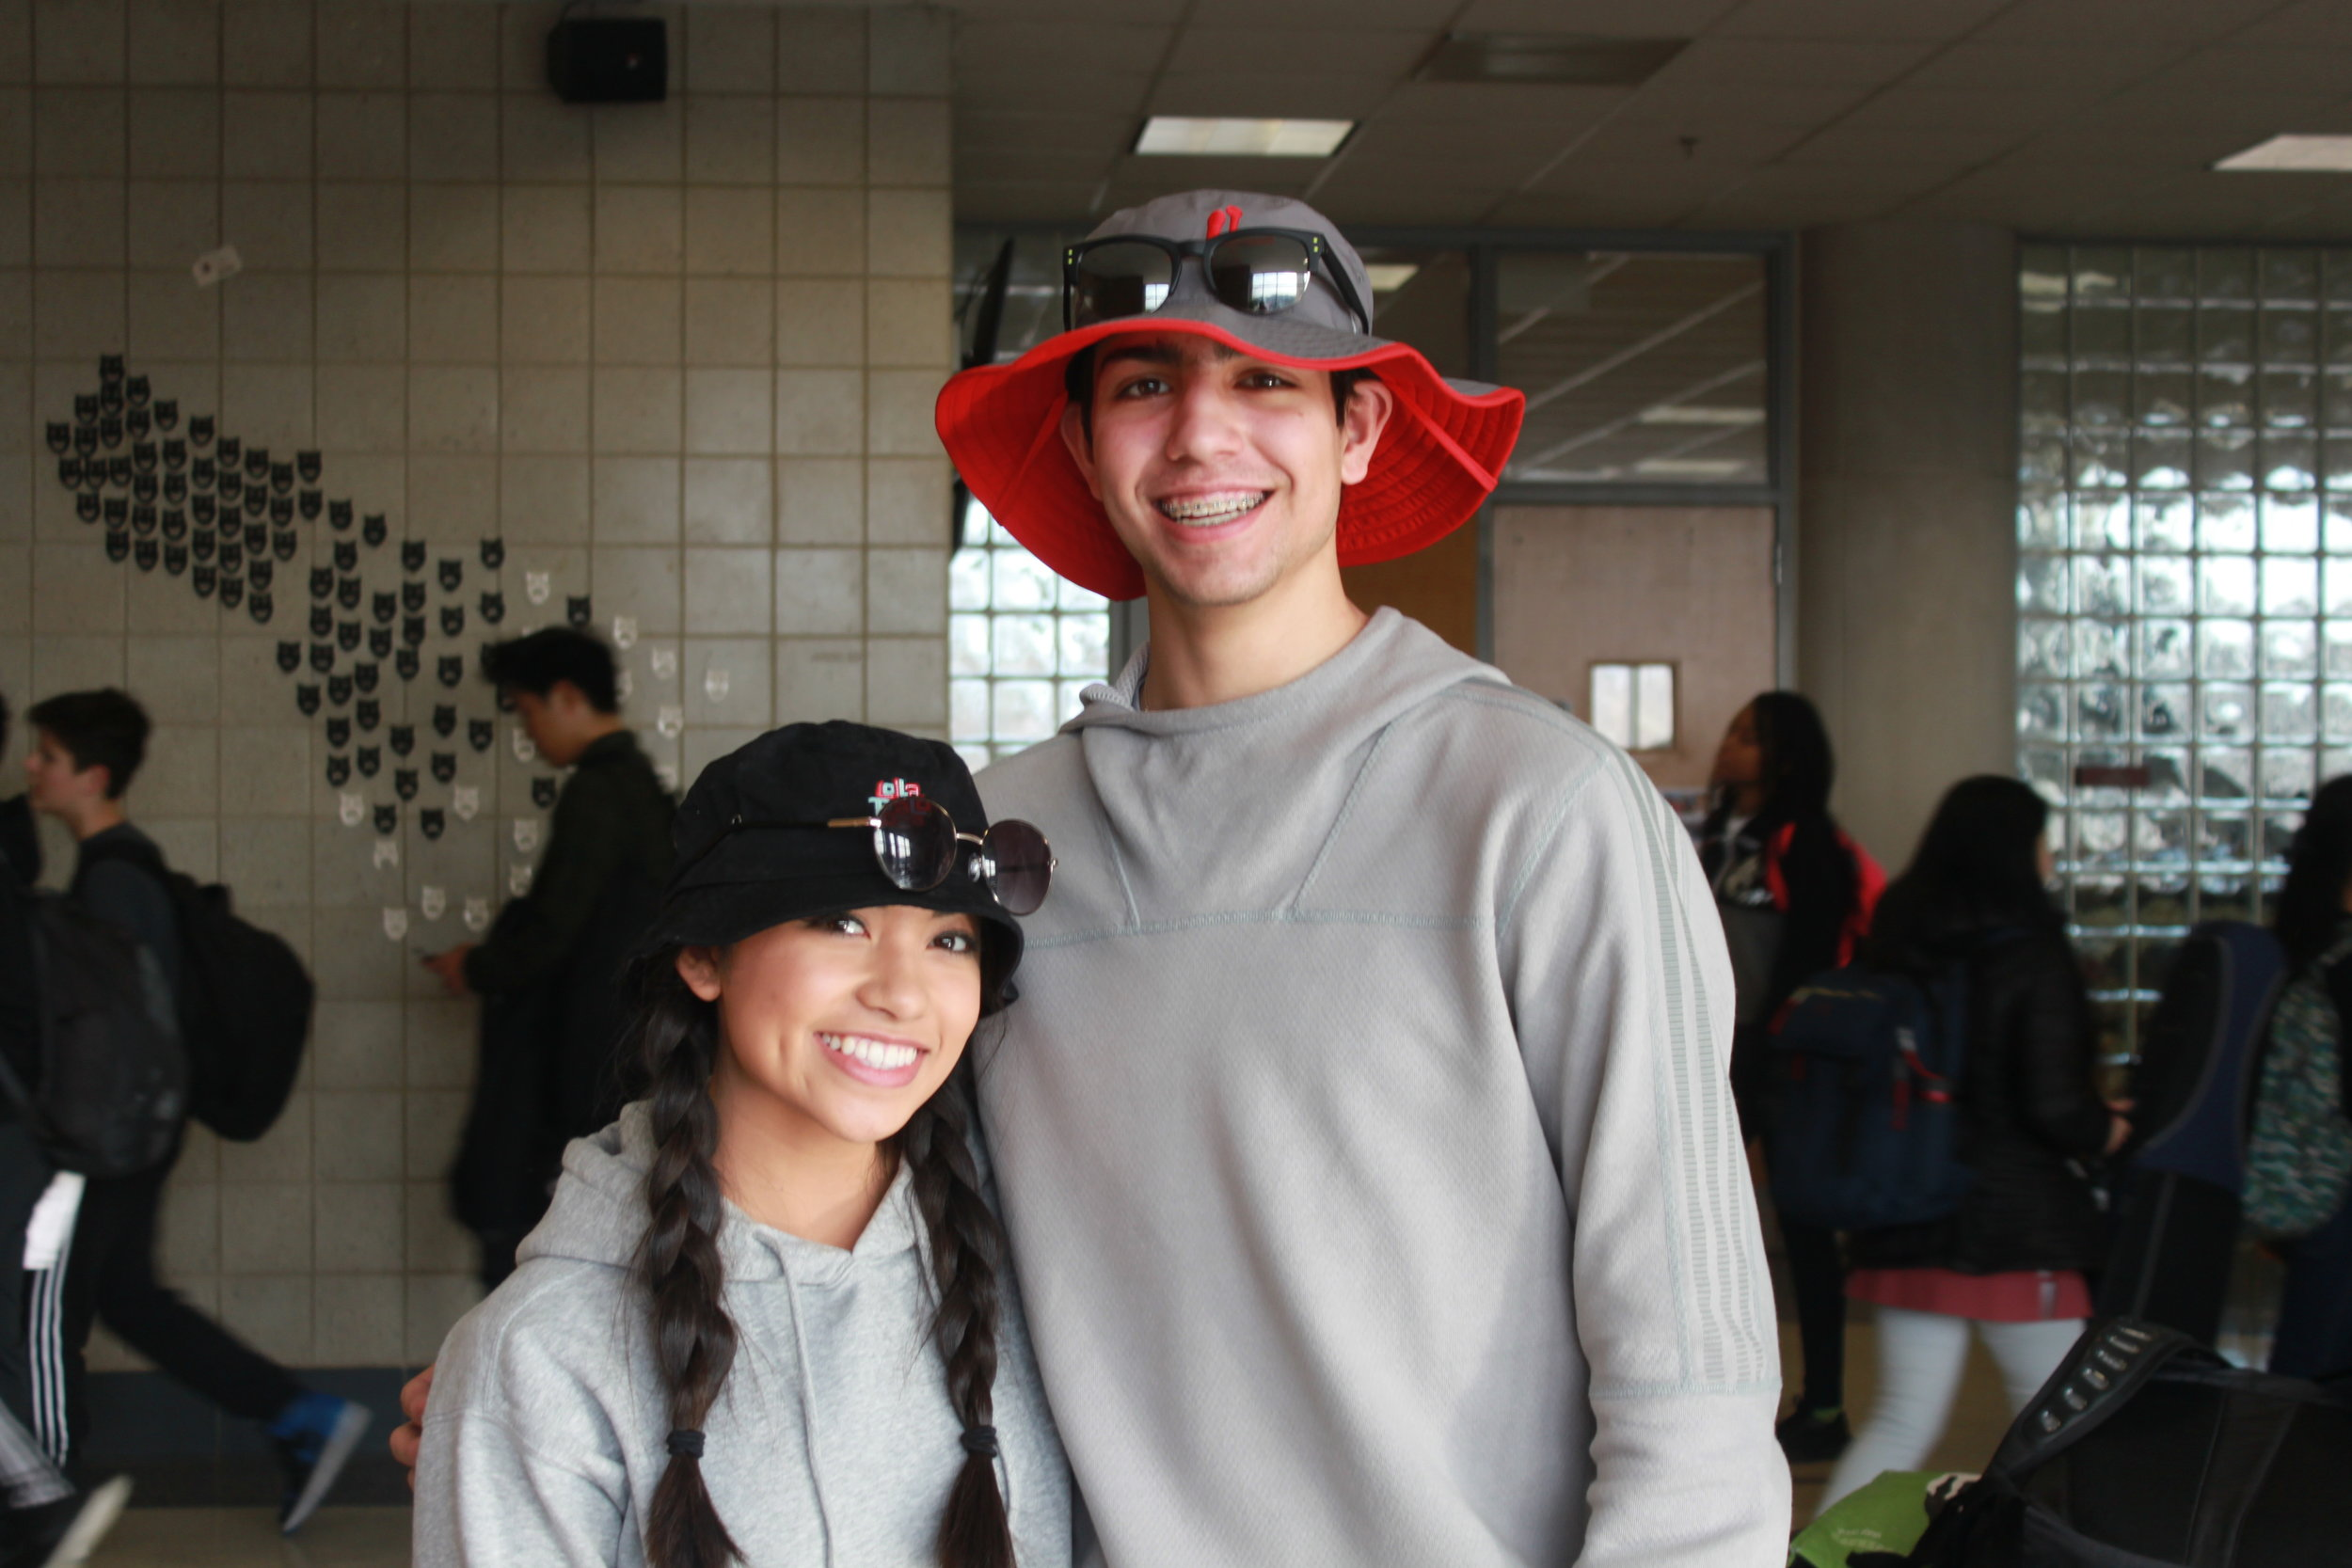 Ben Rosenguard and Eva Empleo wear bucket hats and sunglasses to top off their twin day look.